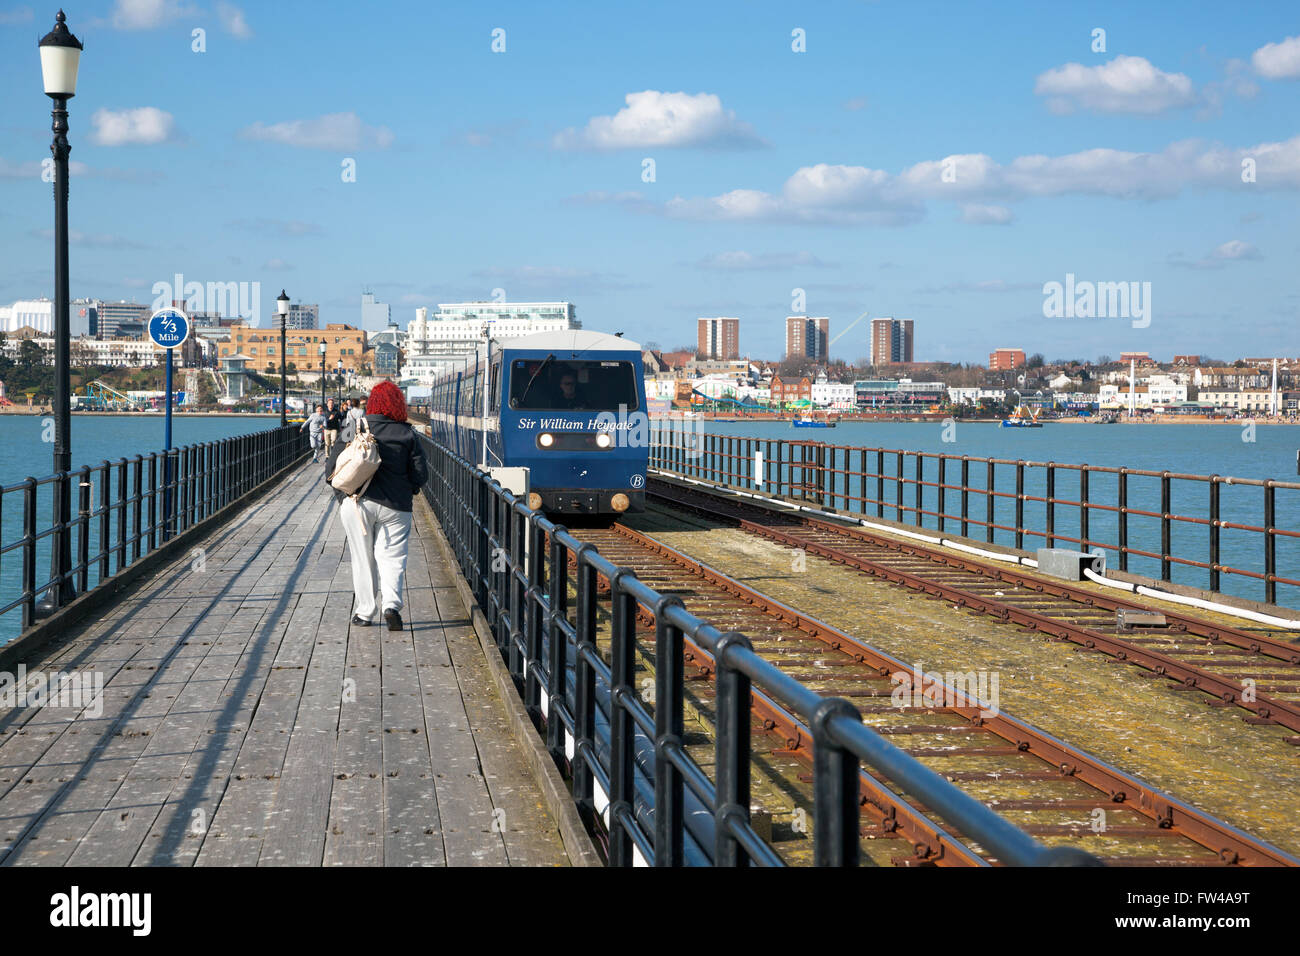 Southend Pier the walkway and the train, Southend-on-Sea, UK - Stock Image